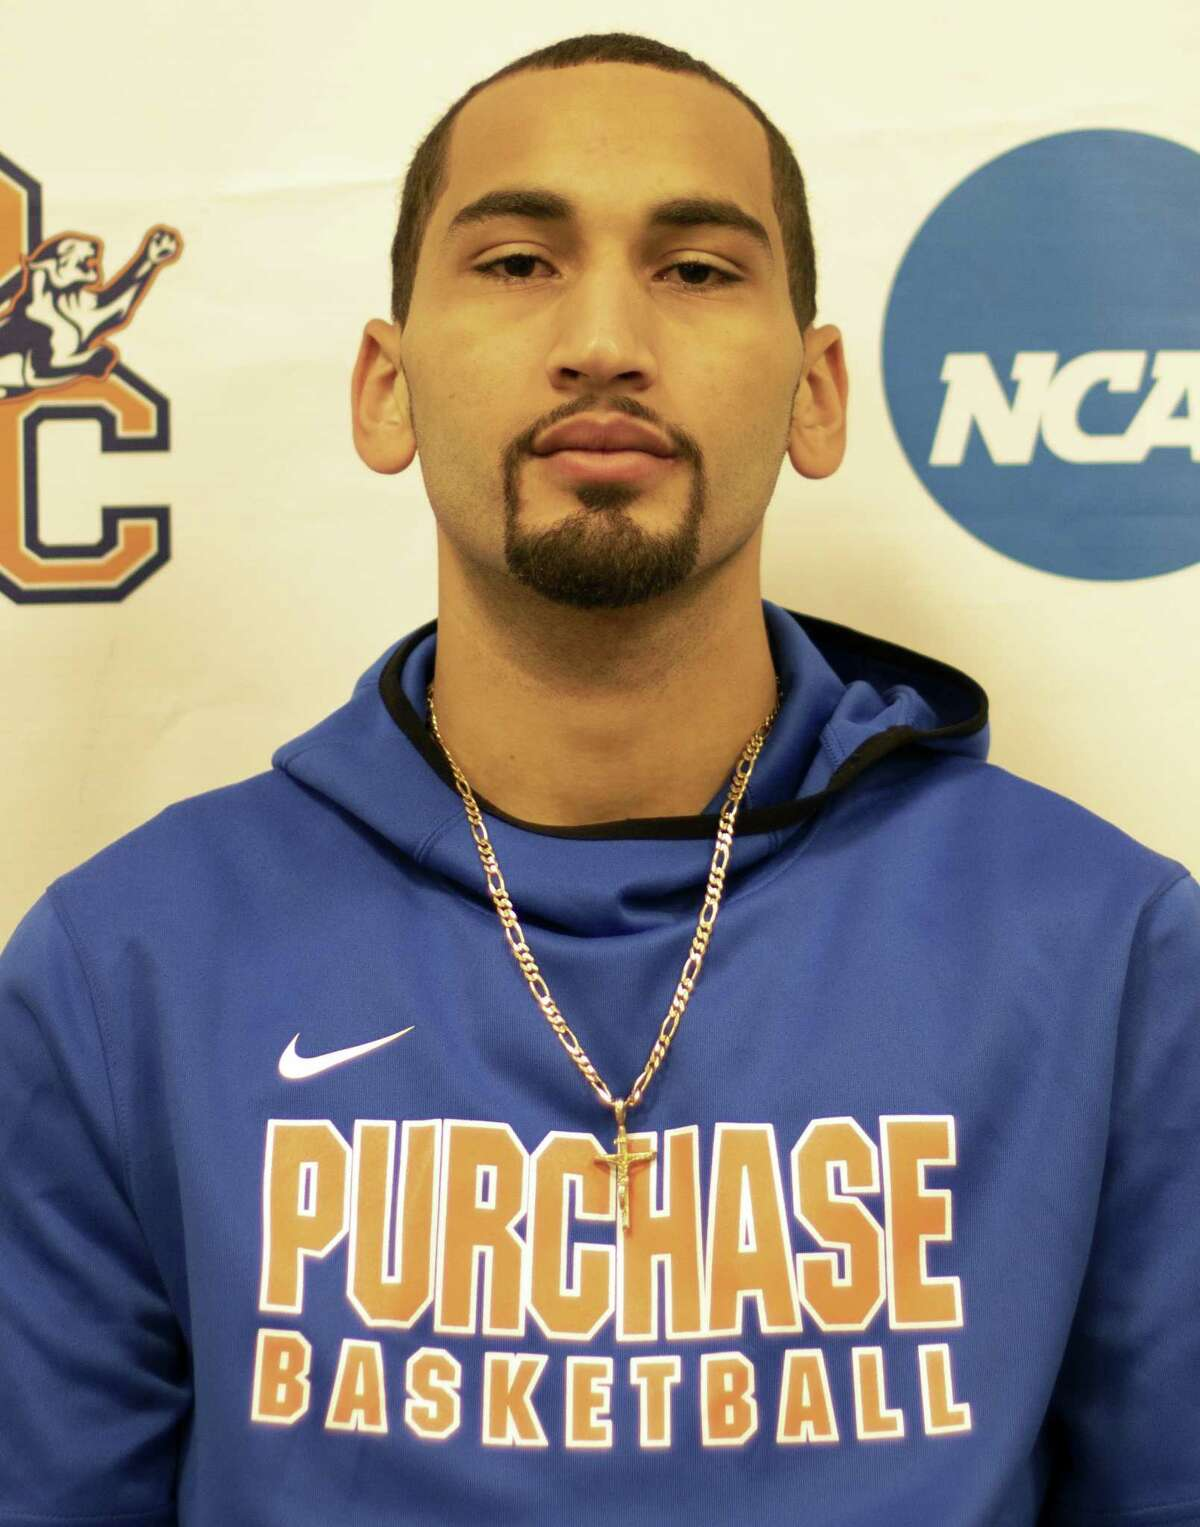 Elijah Lott, a 6-foot-3 guard from Columbia High, leads Purchase College in scoring (21.2), rebounding (9.2), assists (115) and steals (47). (Purchase College)